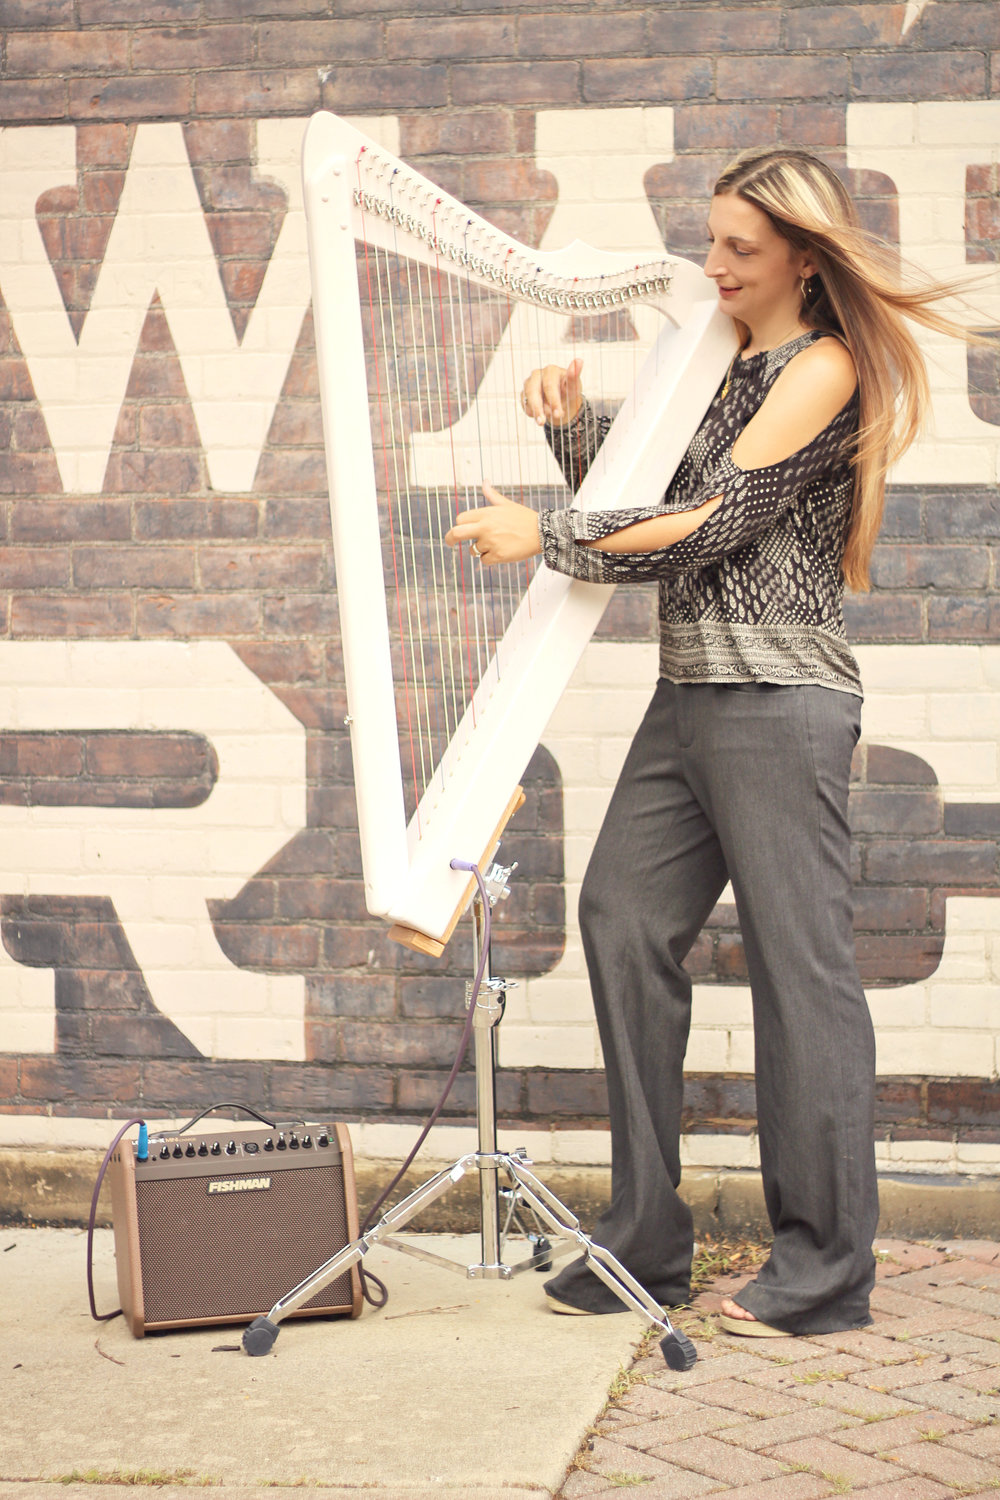 Ashley with a Grand Harpsicle® Harp in the Grand Standing Stand. She also is using the Fishman Loudbox Mini Charge Amp and an Asterope Hi Def Cable.